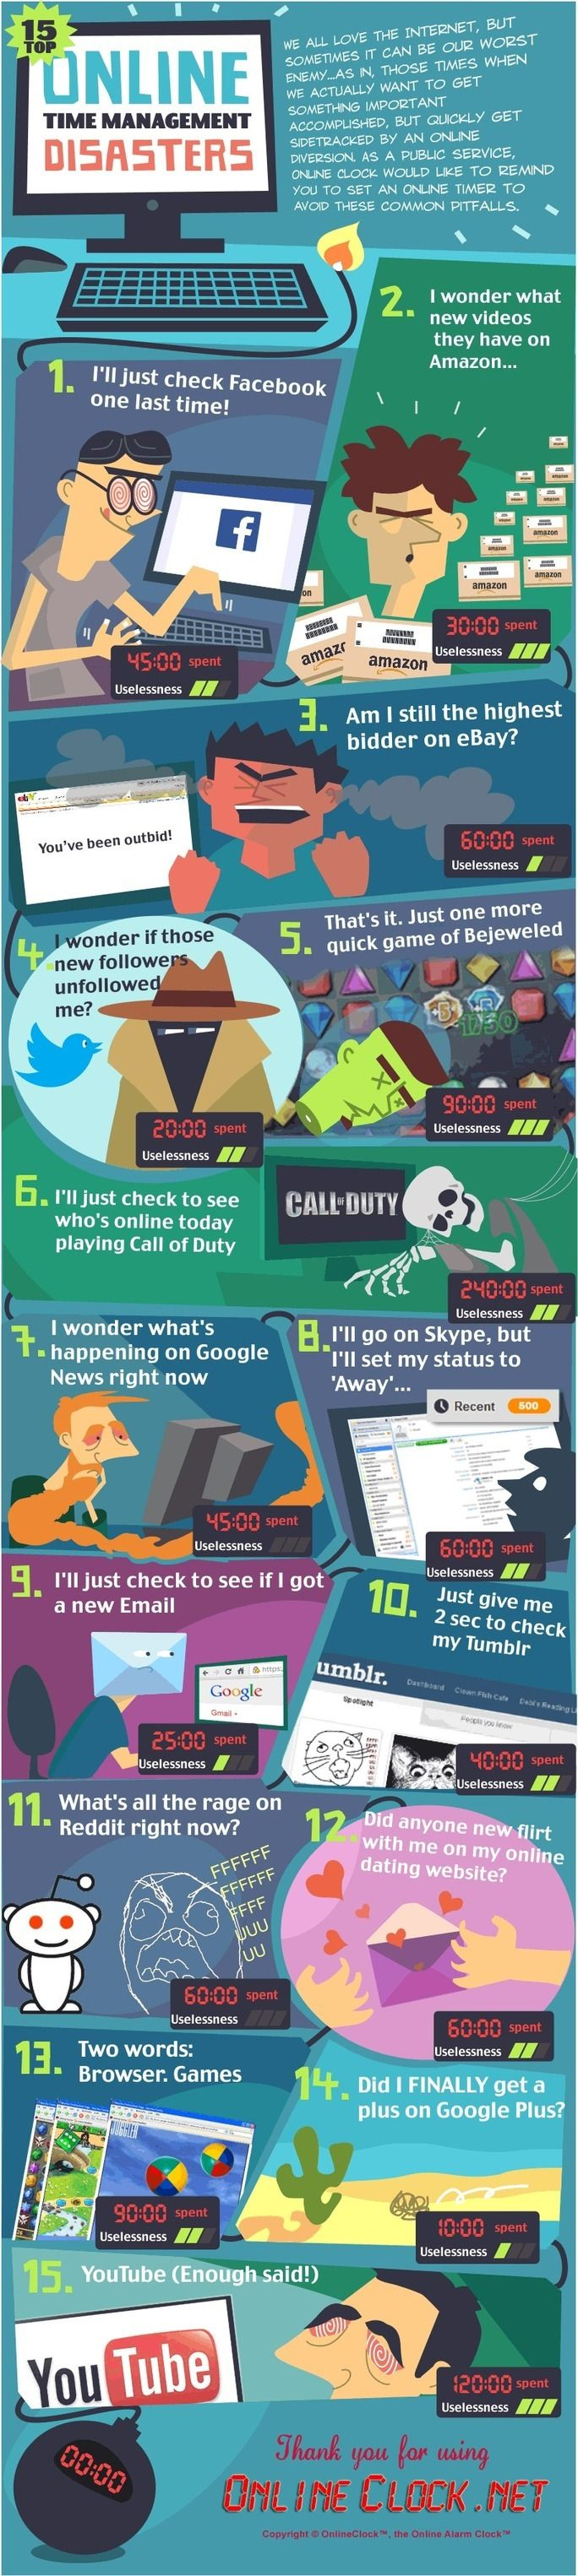 15 Top Online Time Management Disasters [Infographic] | By: OnlineClock.net, via ScoopIt